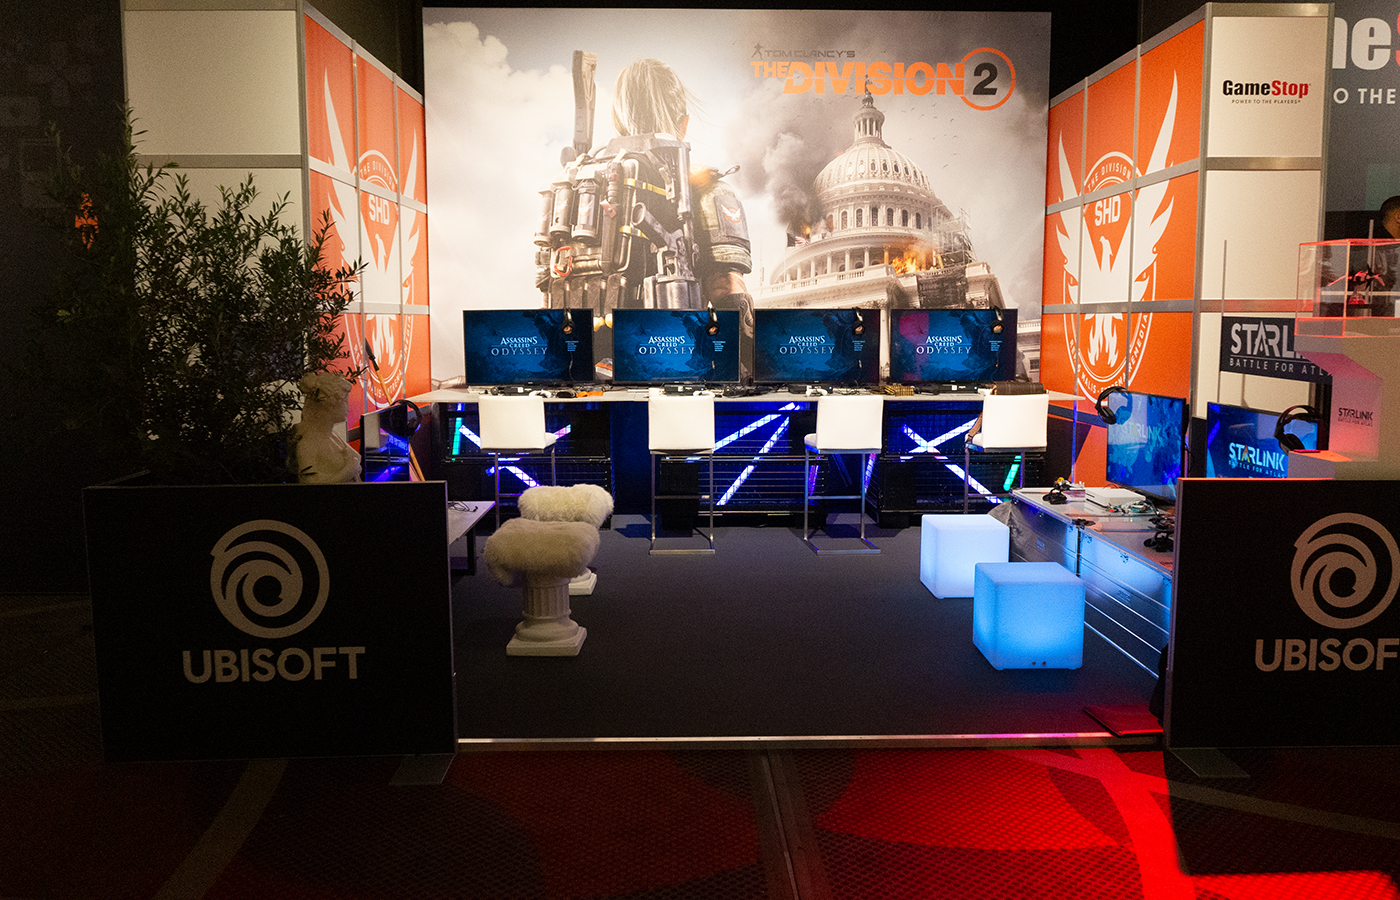 Ubisoft – GameStop Managers Conference